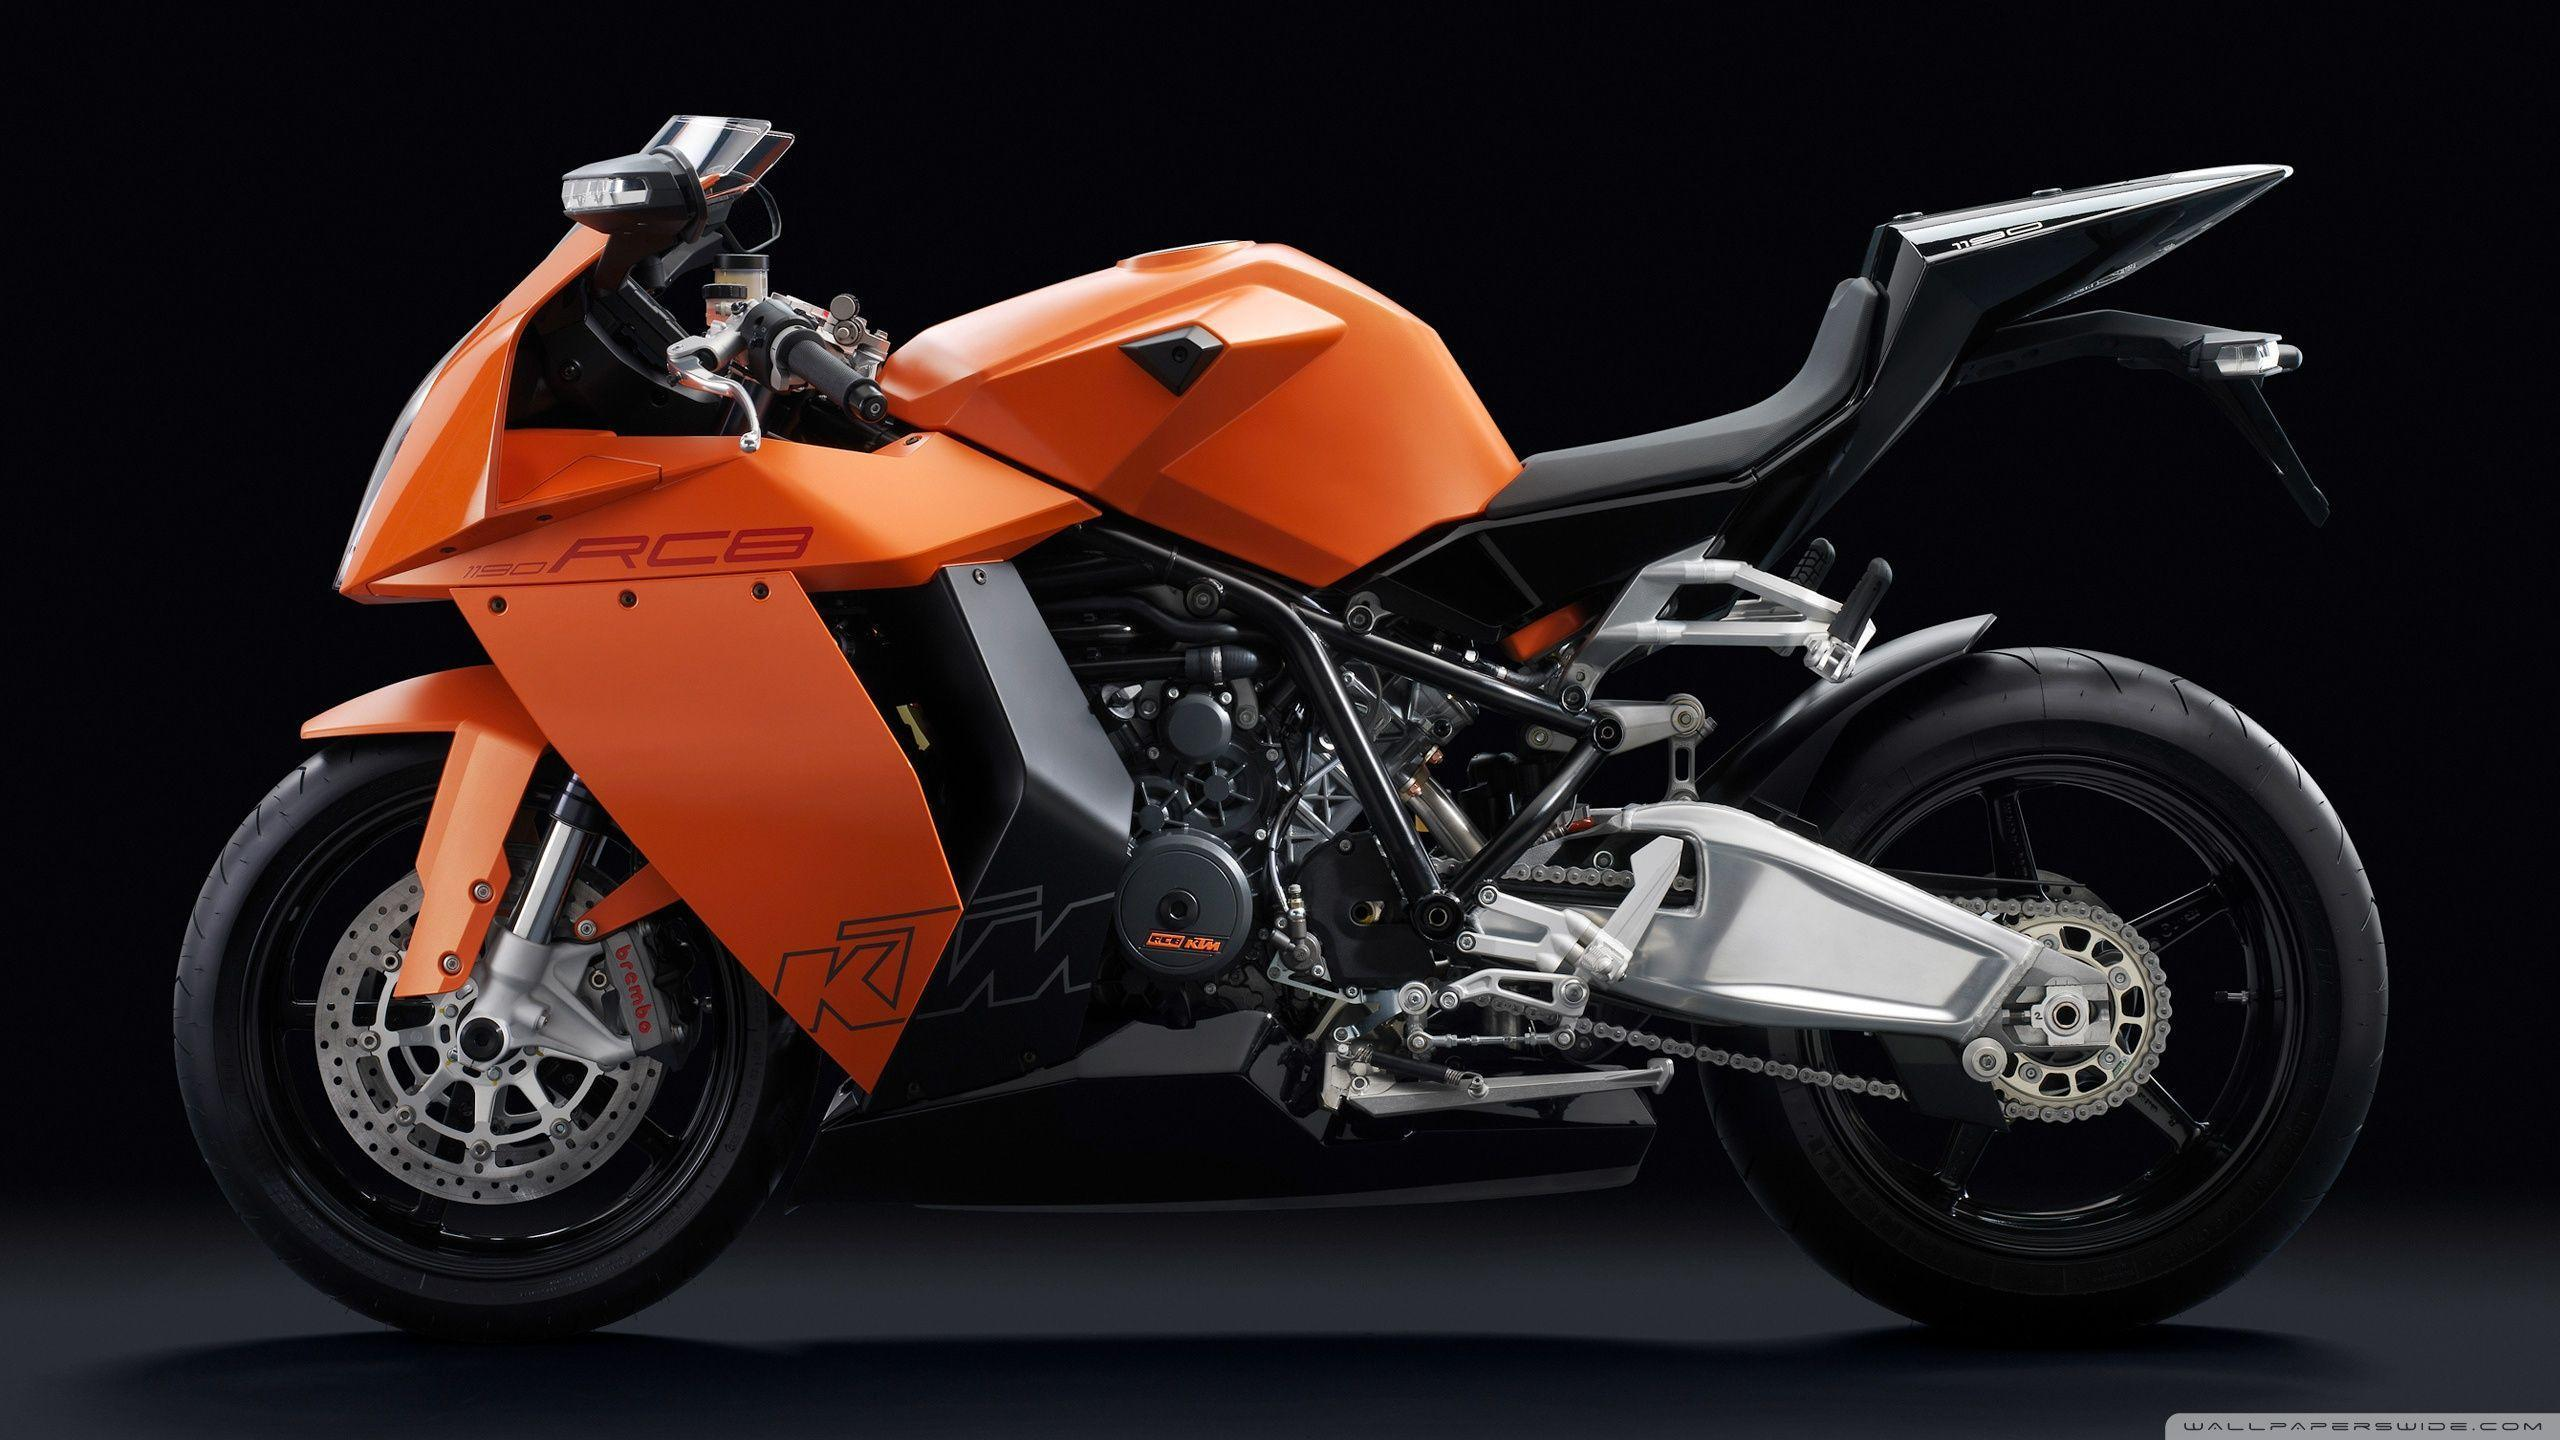 KTM 1190 RC8 Motorcycle HD desktop wallpapers : High Definition